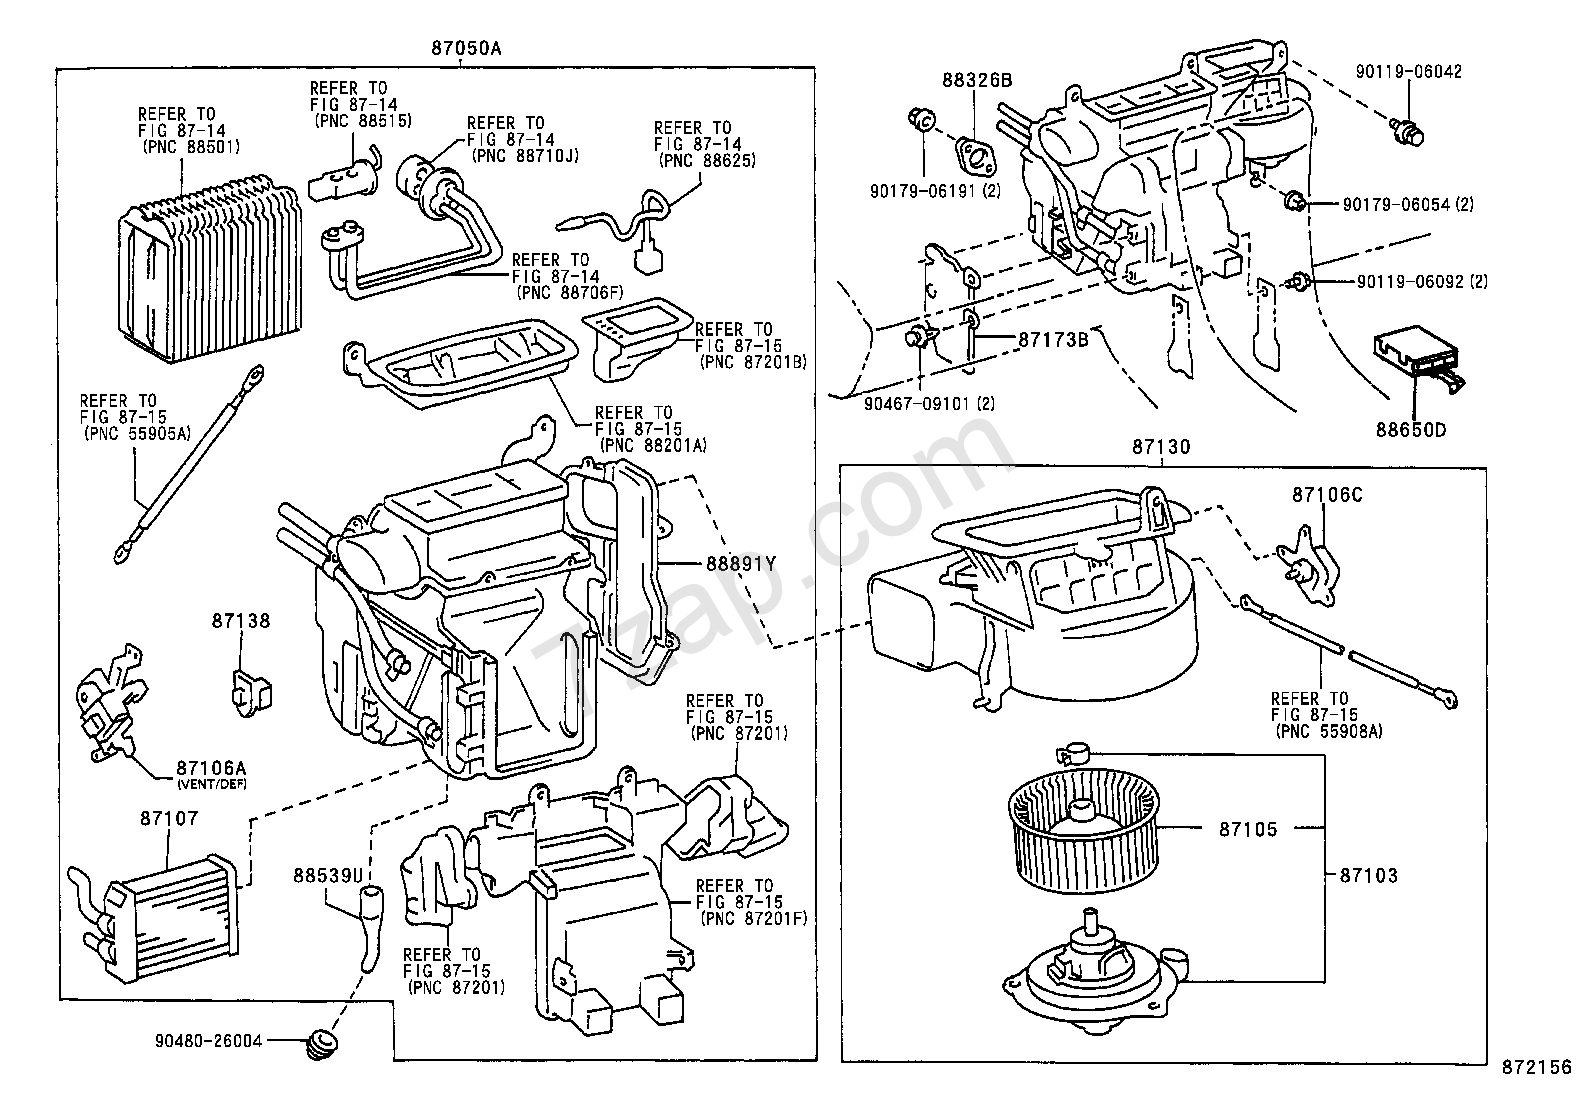 2007 Camry Engine Diagram Wiring Library 99 Toyota Heat Vent Diy Enthusiasts Diagrams U2022